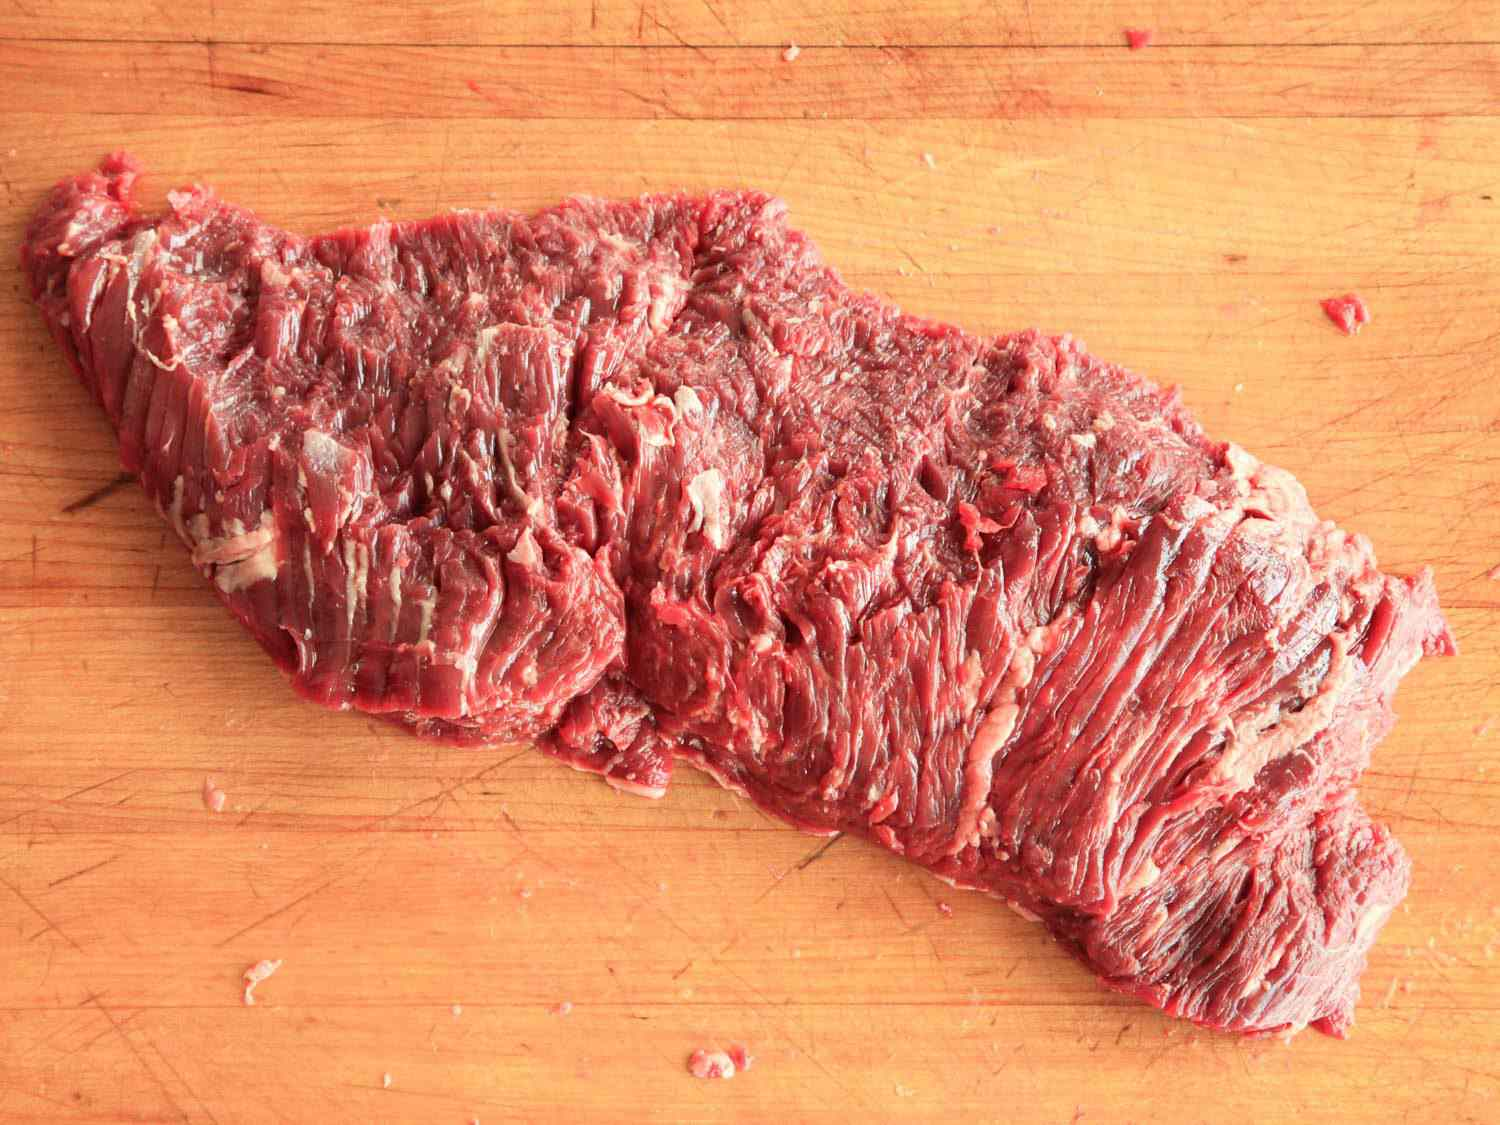 Inexpensive cut of flap steak on a wooden cutting board.